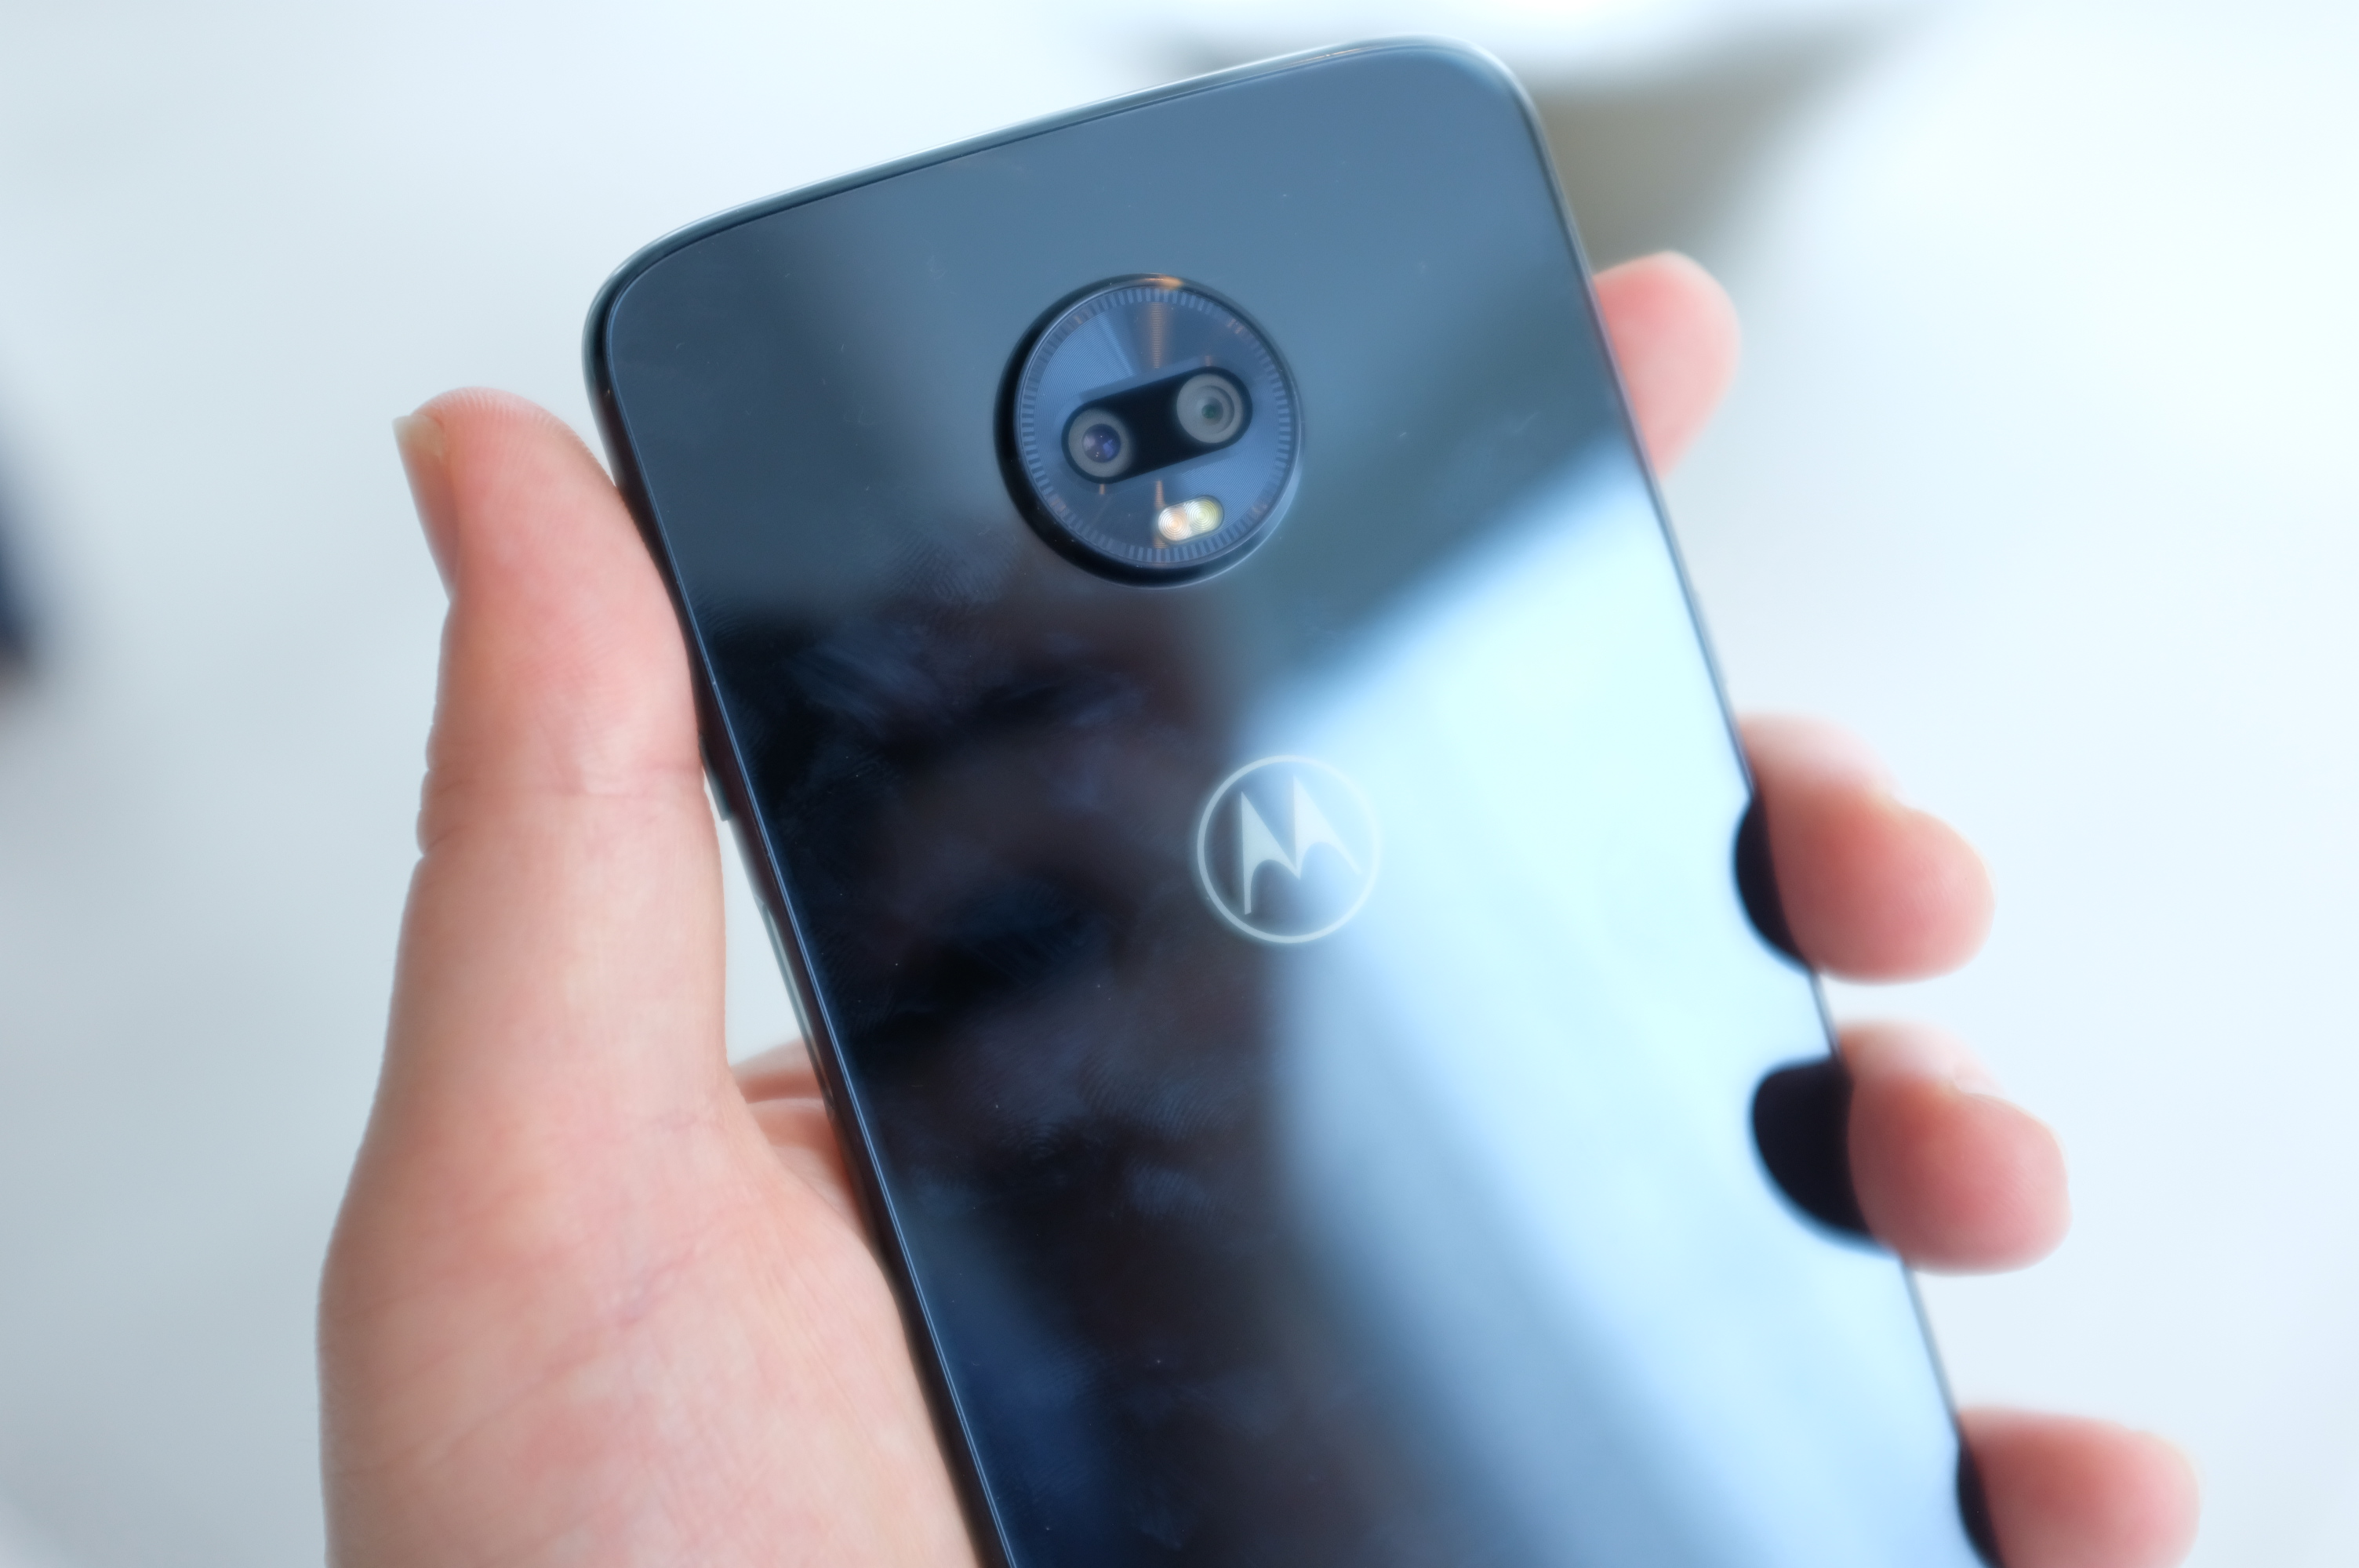 Motorola's Z3 Play modular handset arrives this summer for $499